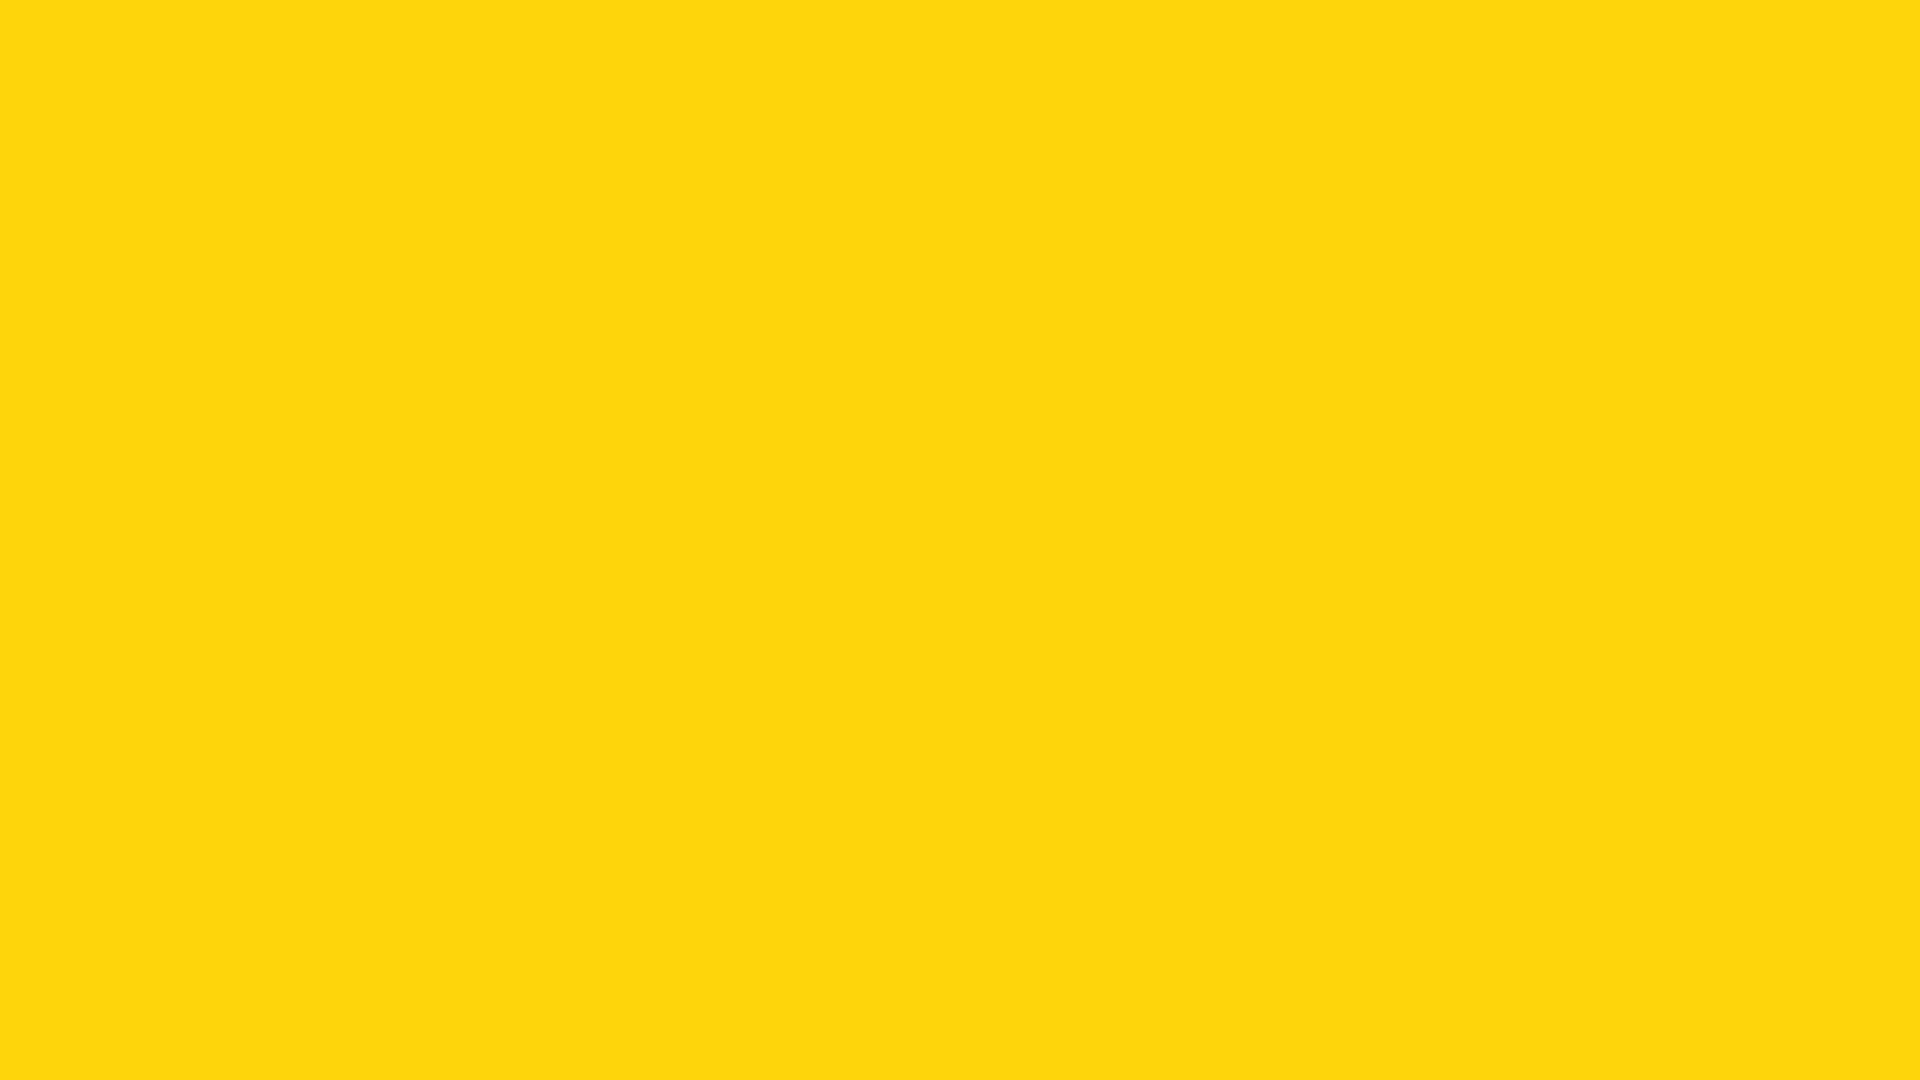 Plain Yellow Wallpaper For Desktop Best Wallpaper HD Yellow 1920x1080